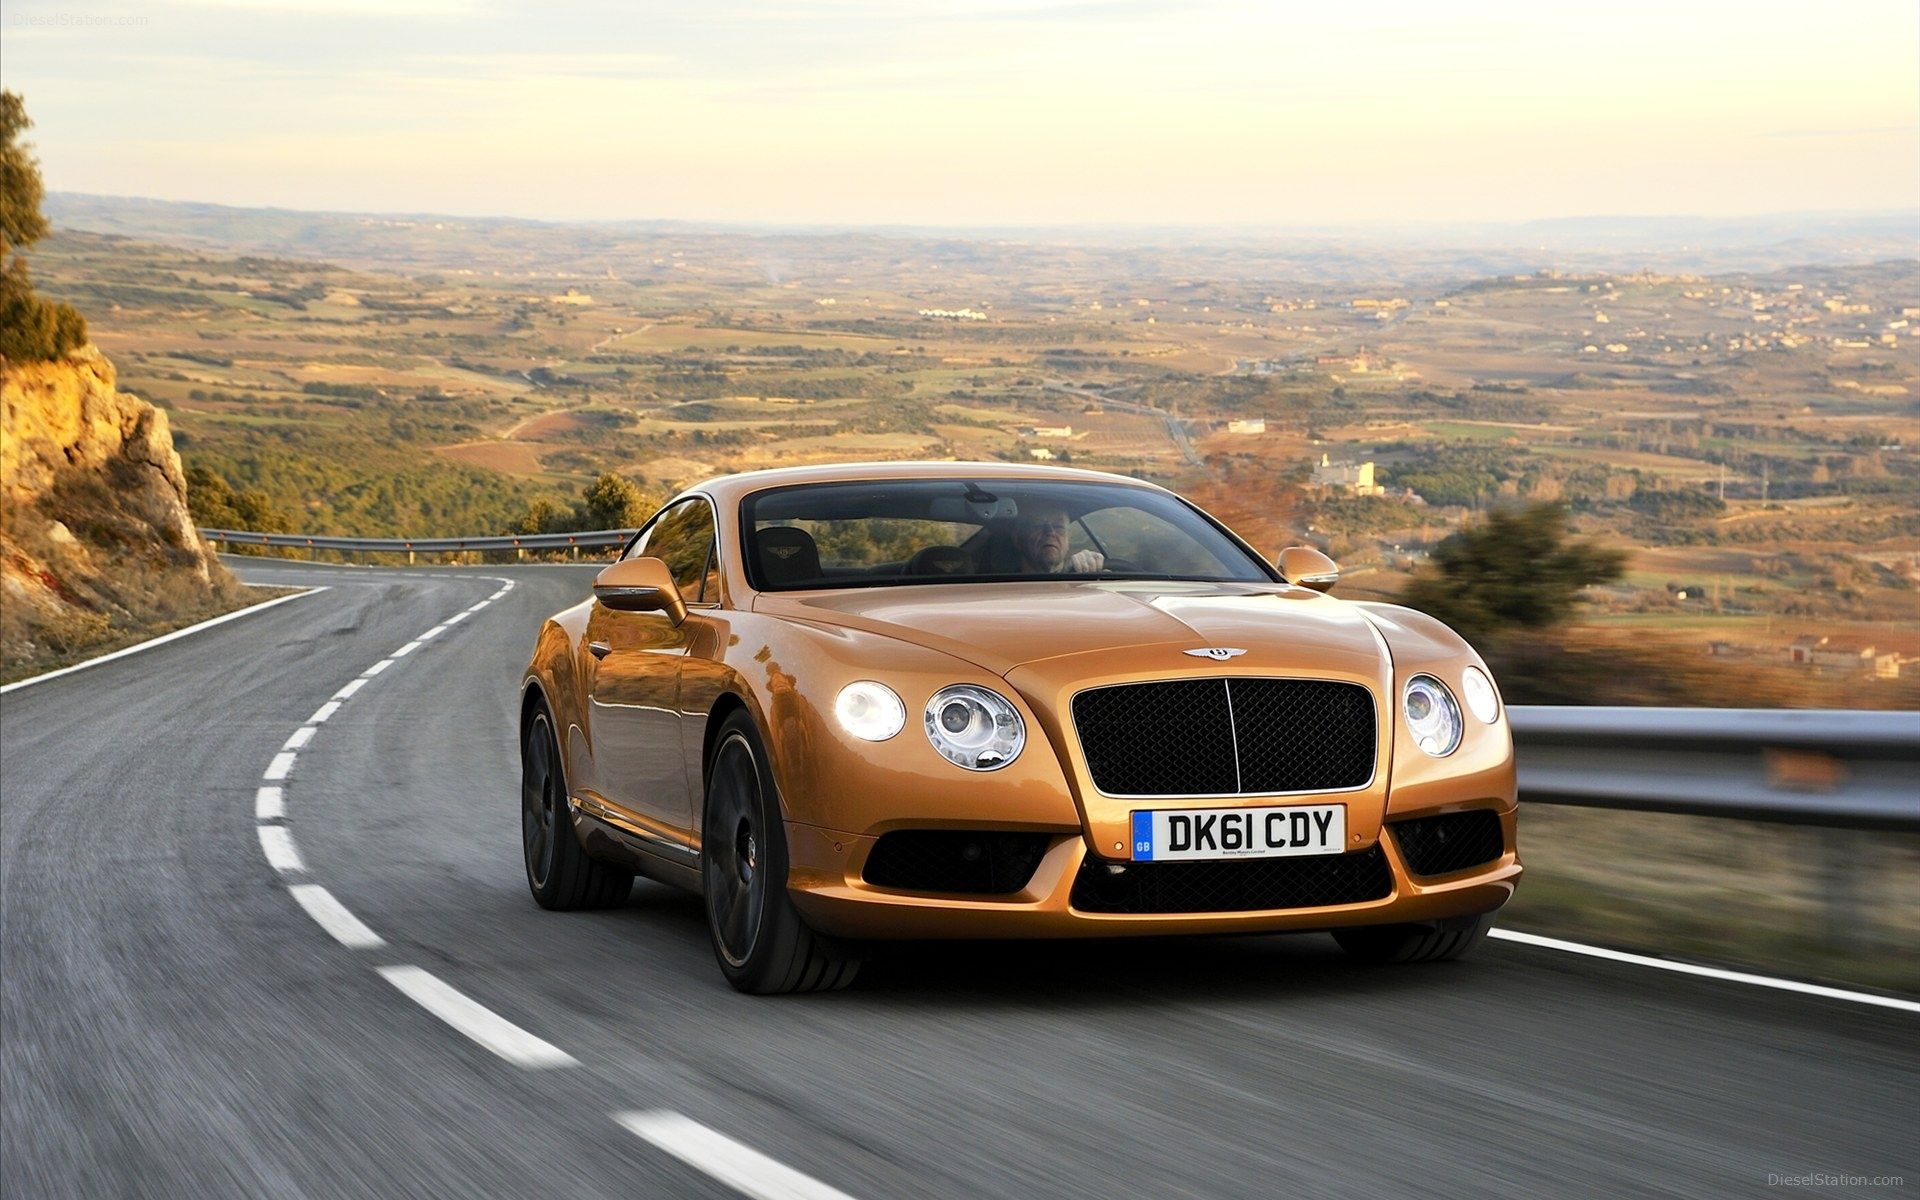 2012 bentley coninental gt3 wallpapers -   40 Bentley Continental Gt Modern Full Hd Wallpapers Hutui6 within 2012 Bentley Coninental Gt3 Wallpapers | 1920 X 1200  2012 bentley coninental gt3 wallpapers Wallpapers Download these awesome looking wallpapers to deck your desktops with fancy looking car picture. You can find several paint car designs. Impress your friends with these super cool concept cars. Download these amazing looking Car wallpapers and get ready to decorate your desktops…